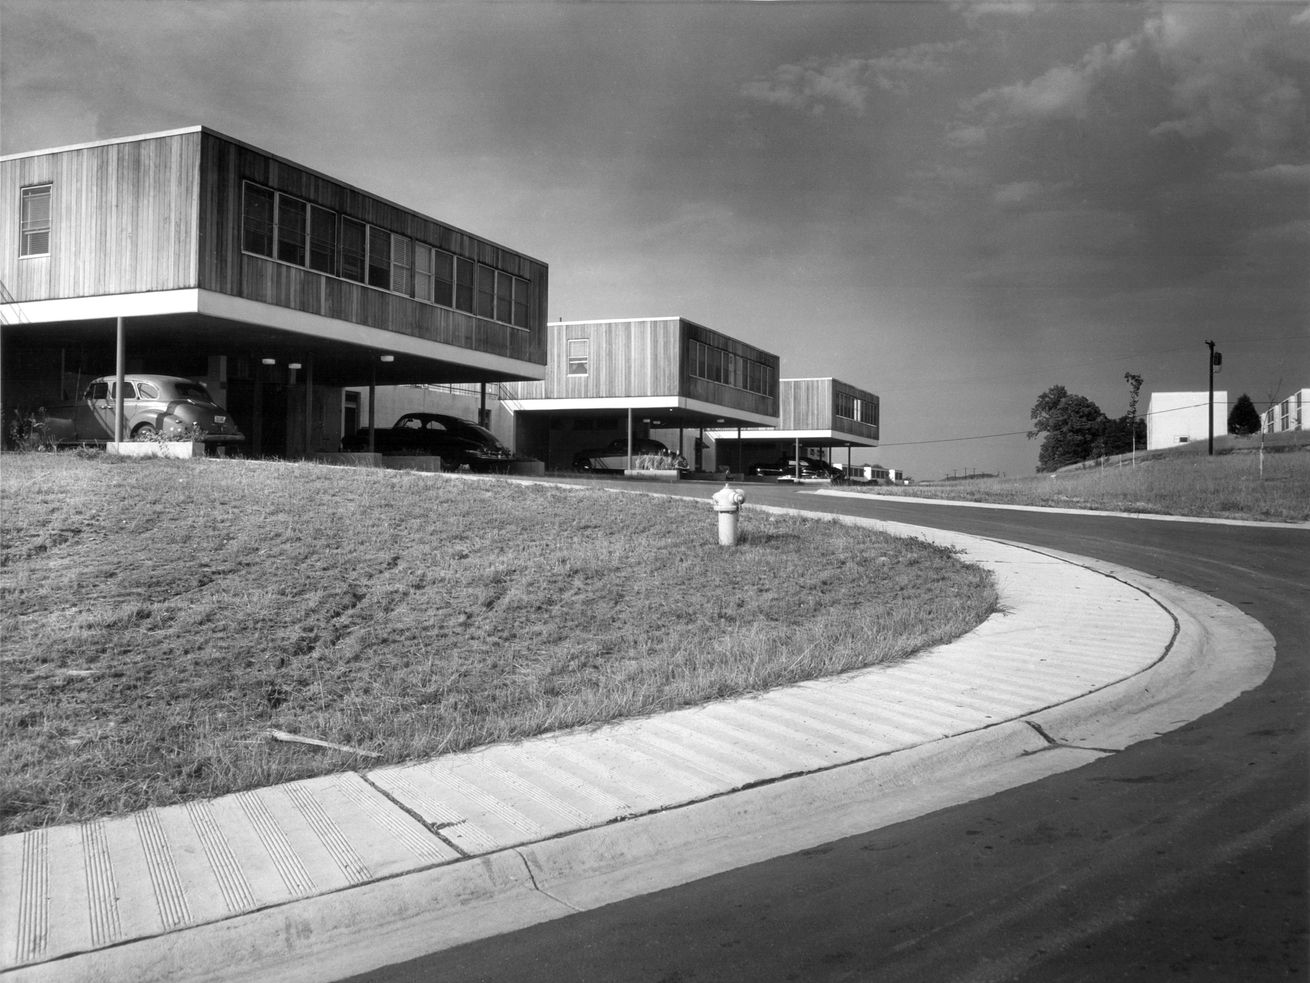 In the 1940s, the government built three secret cities from scratch as part of the Manhattan Project. Prefabricated houses, like those by SOM shown above, helped establish a good quality of life.